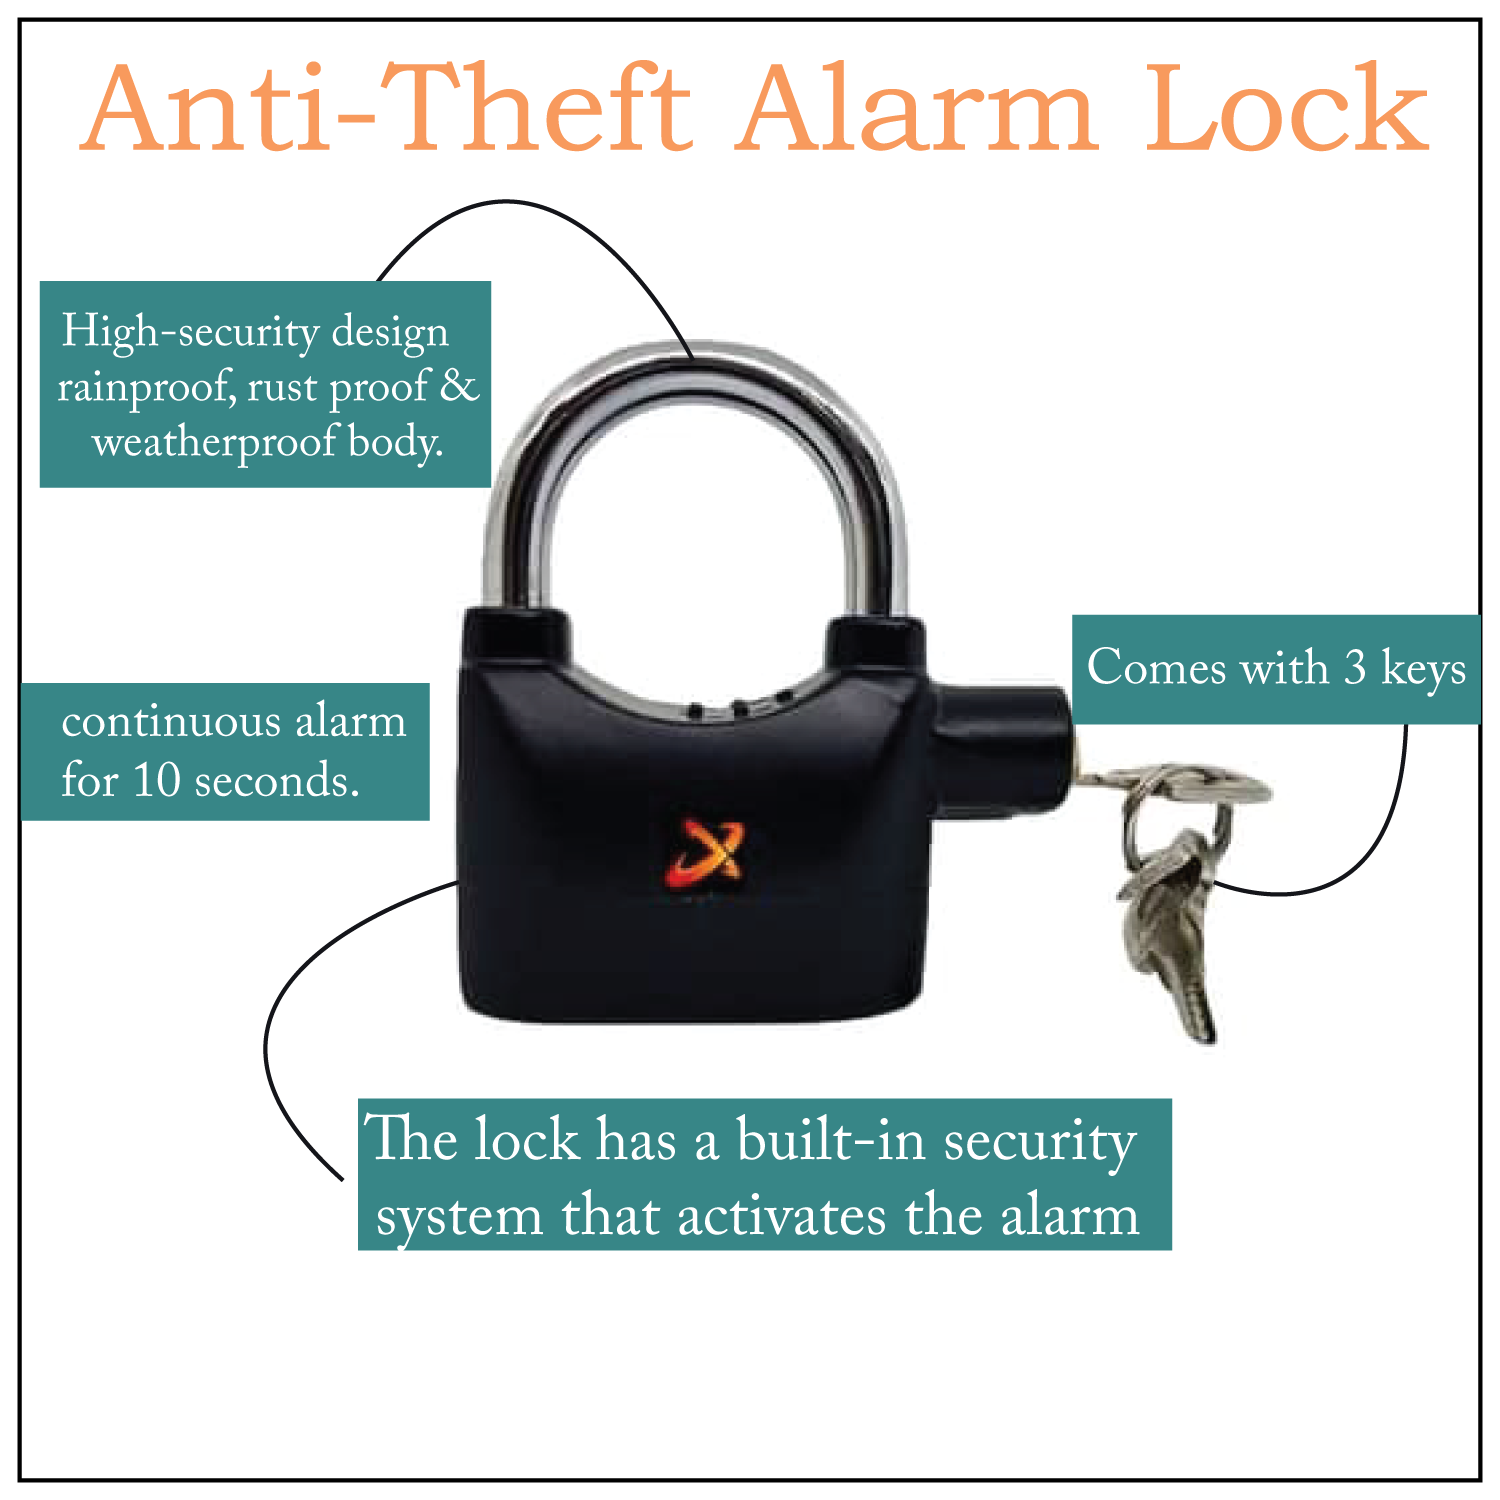 Anti-theft Alarm Lock - Personal Safety Gadgets